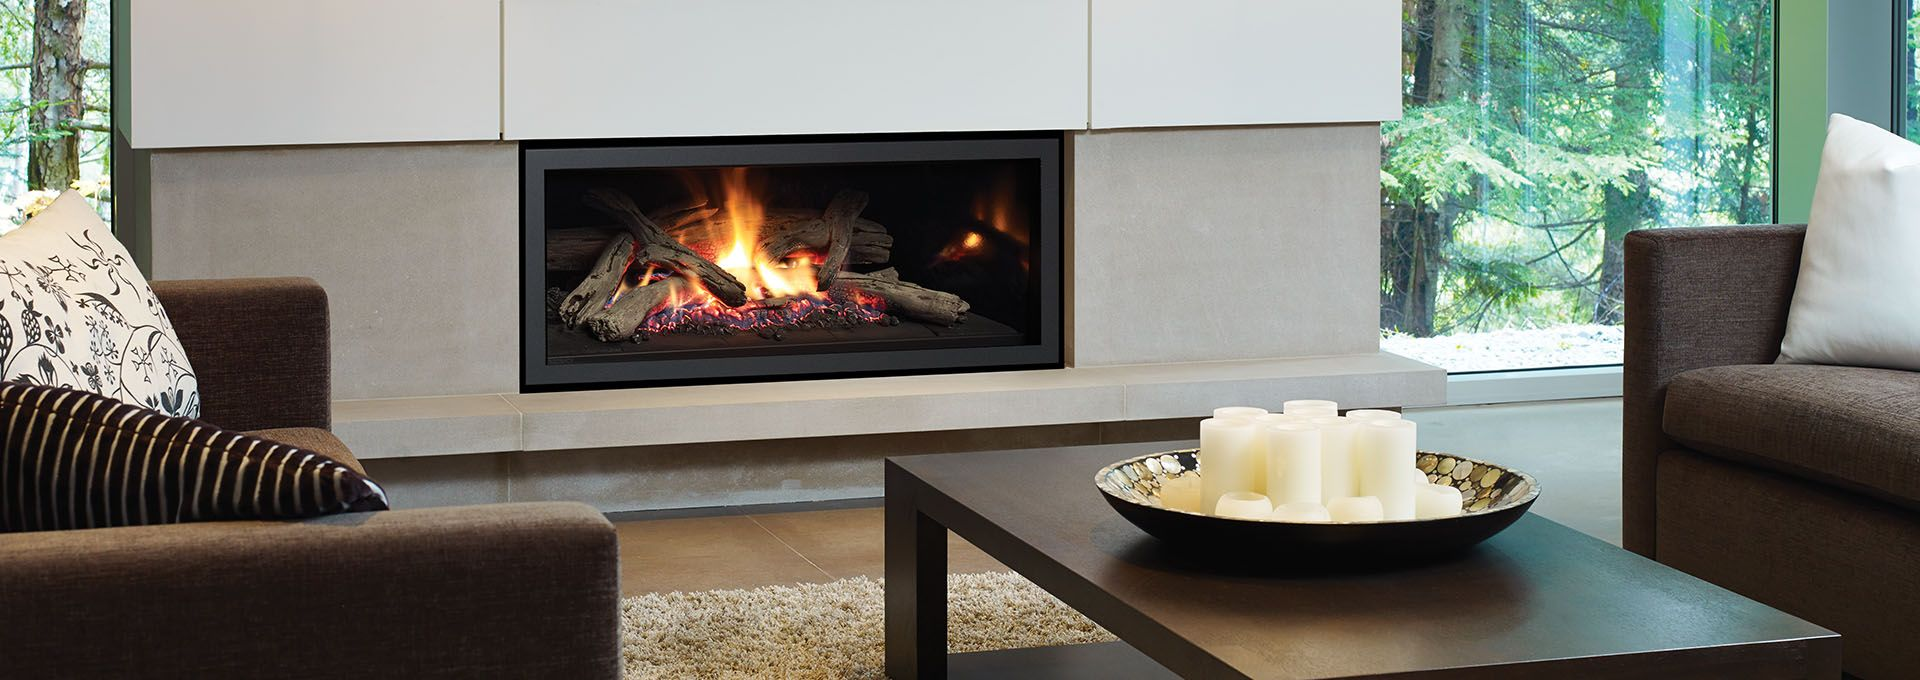 With A Contemporary Gas Fireplace Contemporary Gas Fireplace